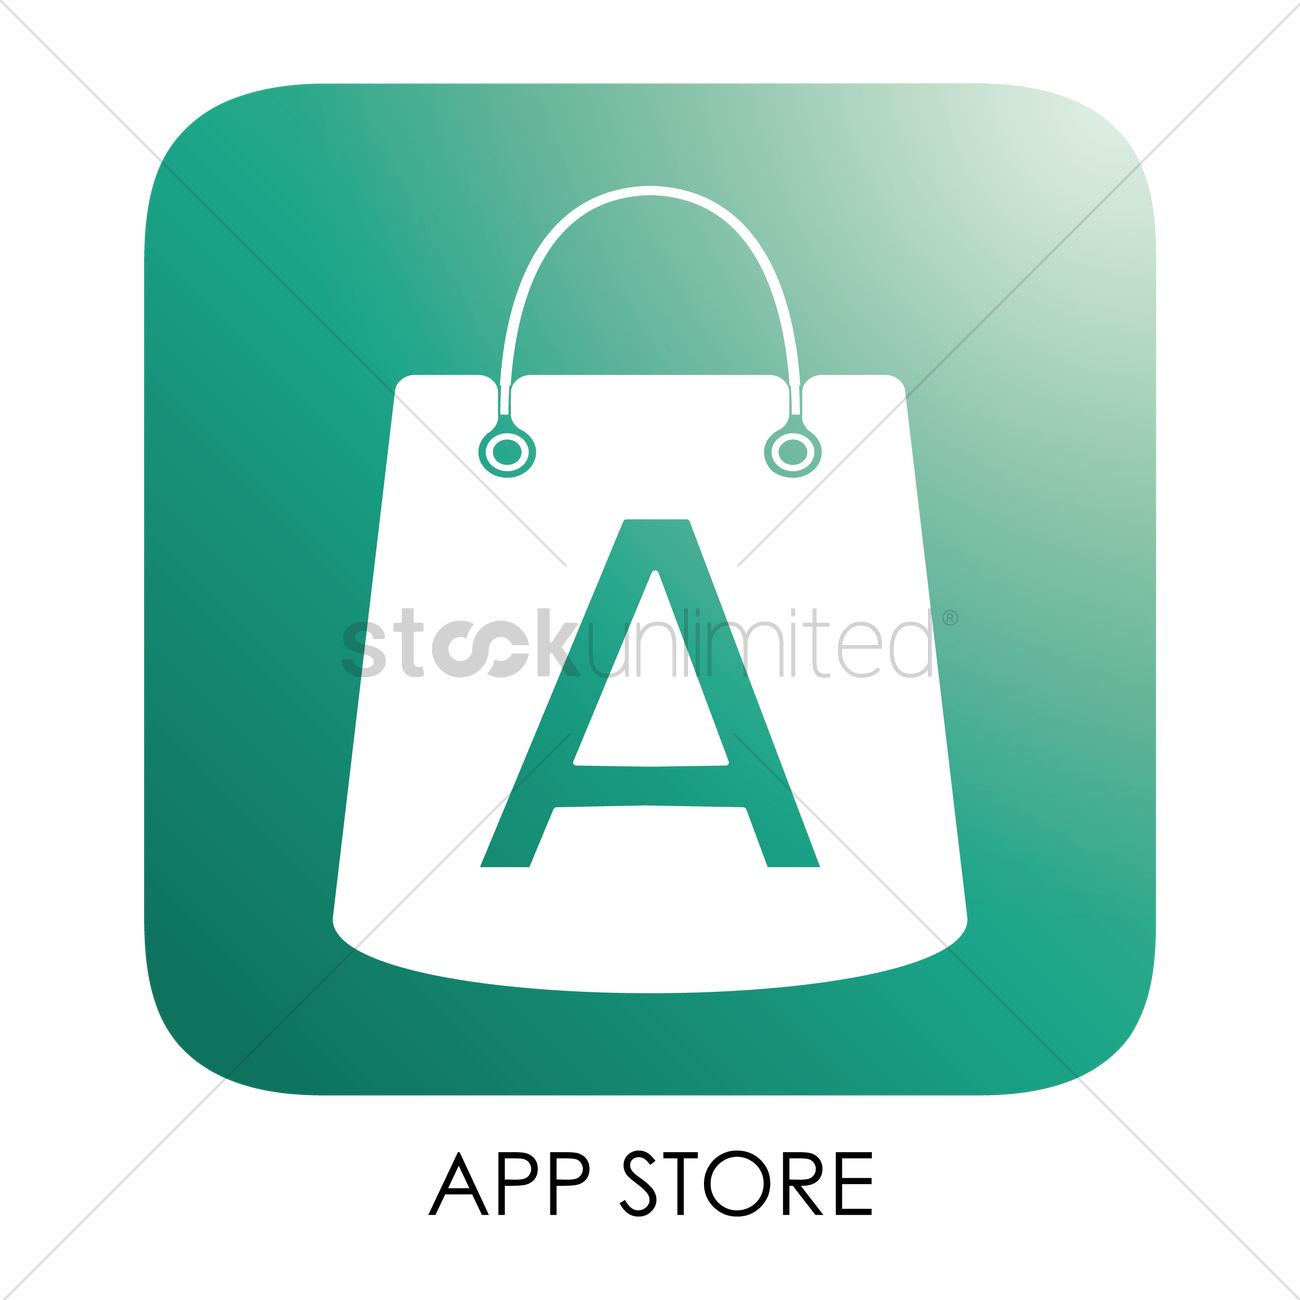 App store icon vector image 1796433 stockunlimited app store icon vector graphic buycottarizona Images